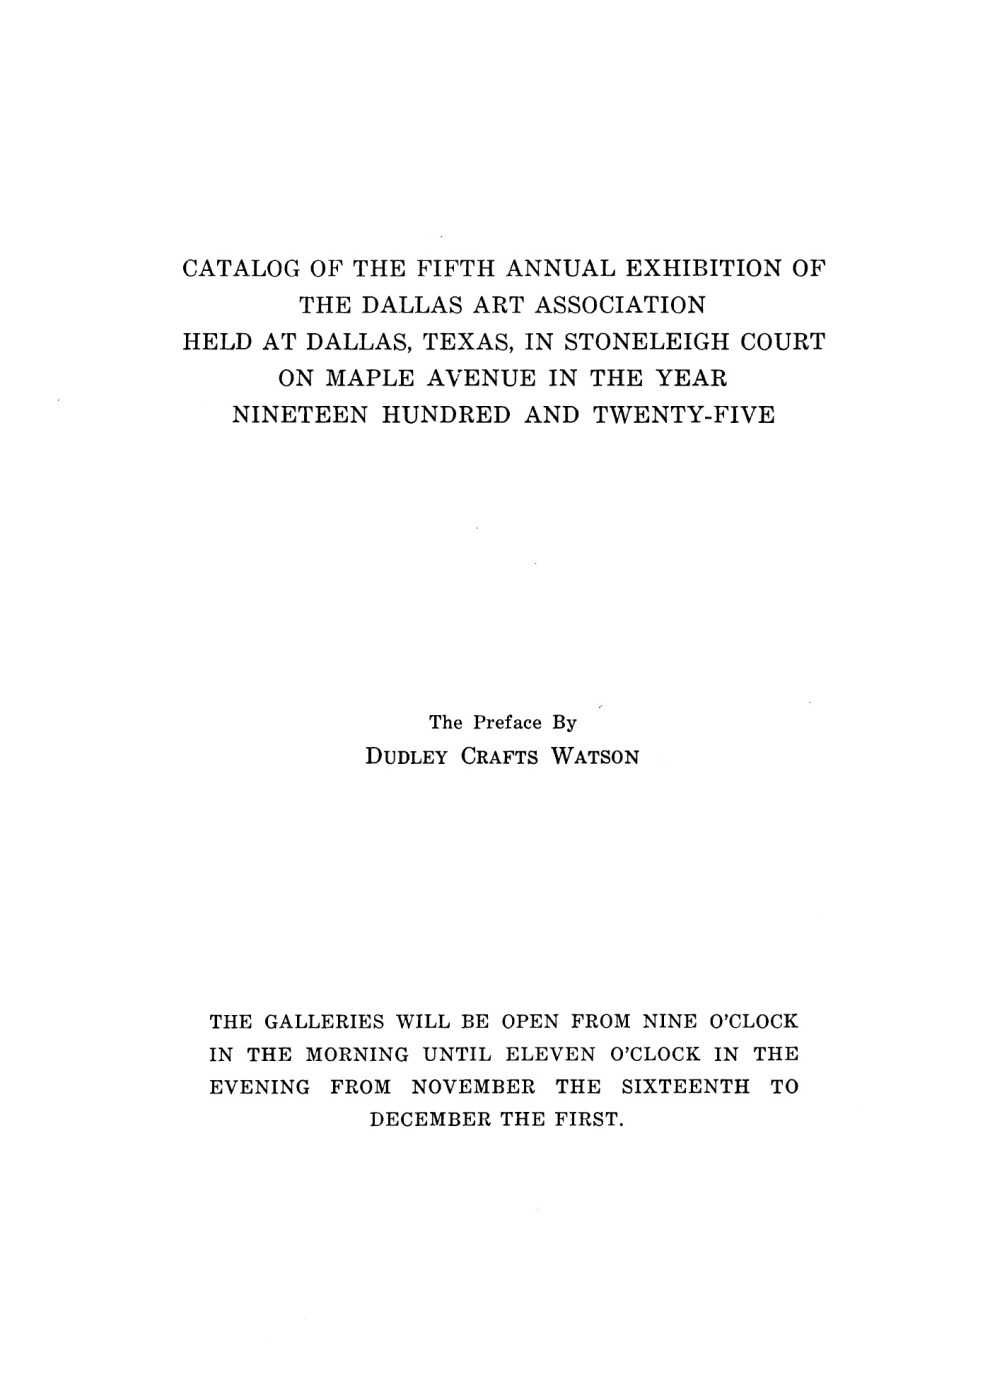 "The Dallas Art Association, Stoneleigh Court, Dallas, TX, ""Fifth Annual Exhibition of The Dallas Art Association"", November 16 – December 1, 1925"